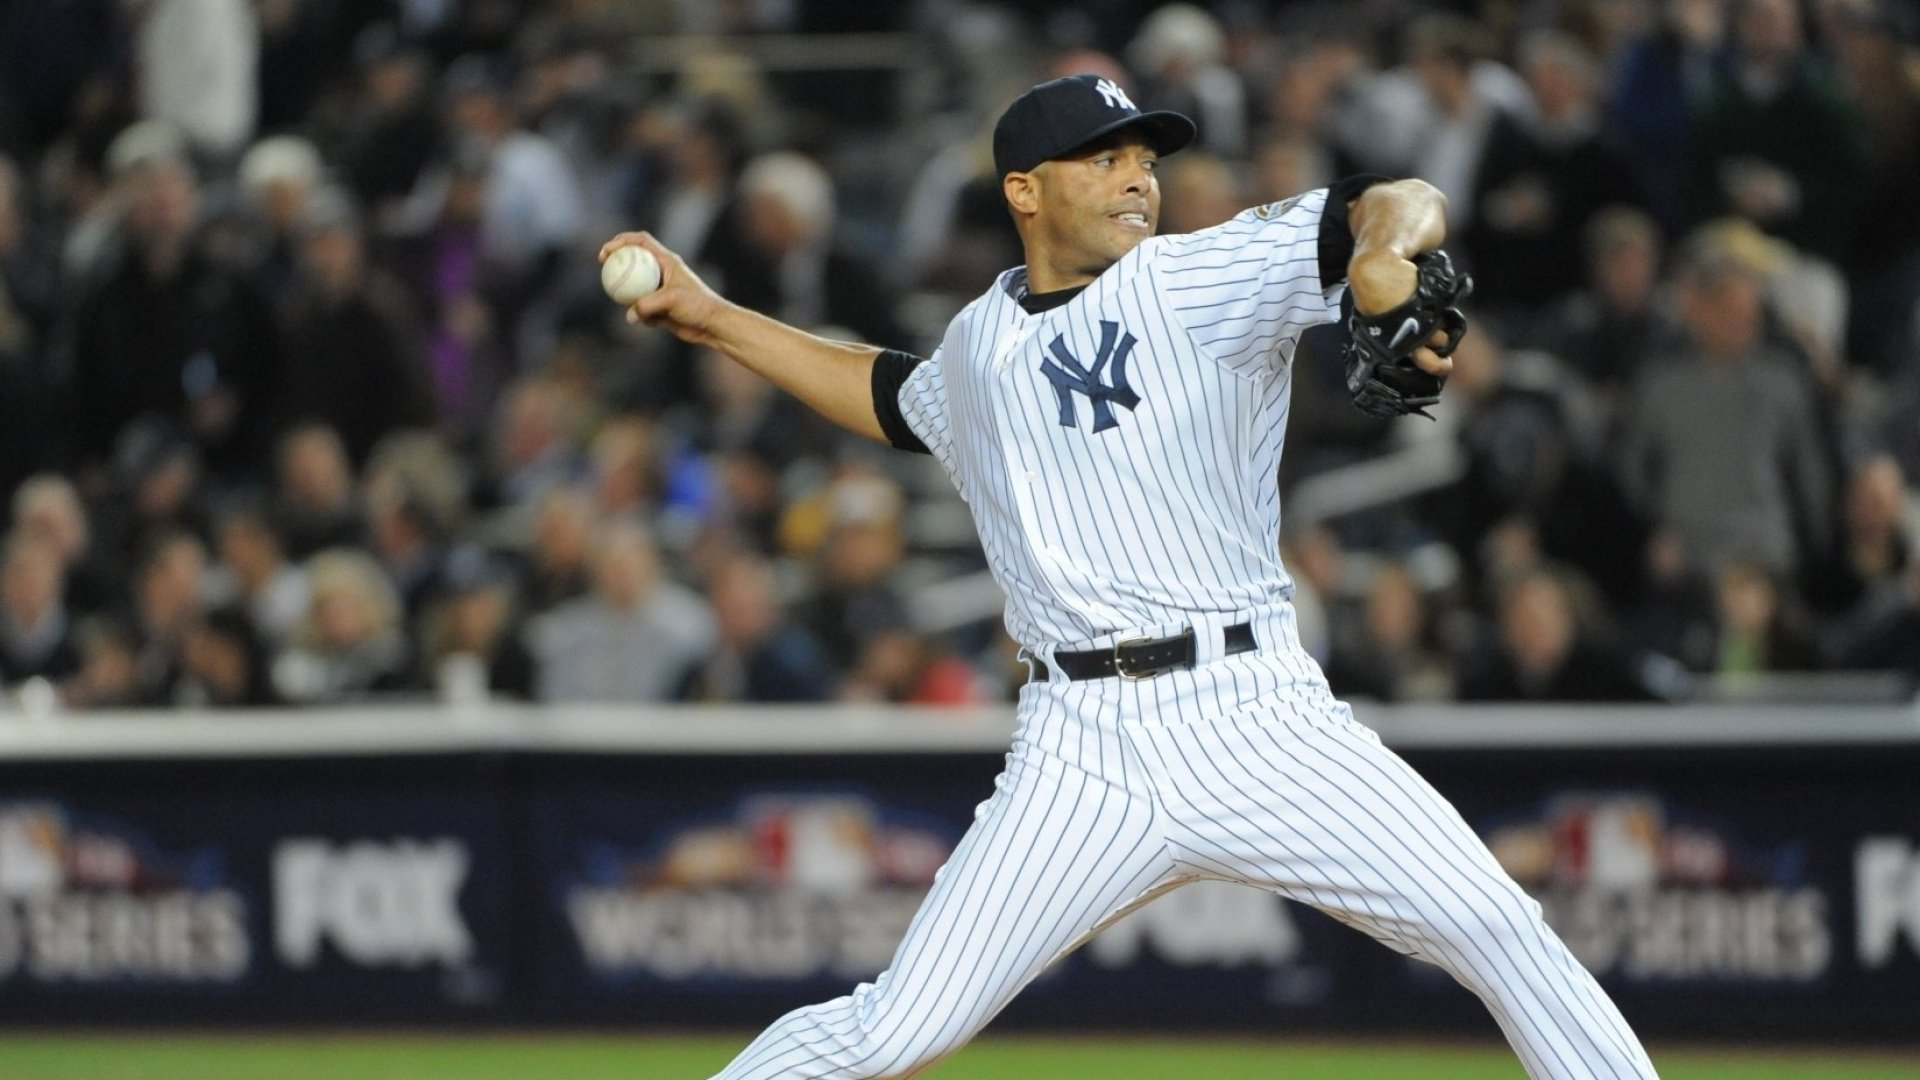 Mariano Rivera's Unparalleled EQ Helped Him Become the First Unanimous Hall of Famer in MLB History